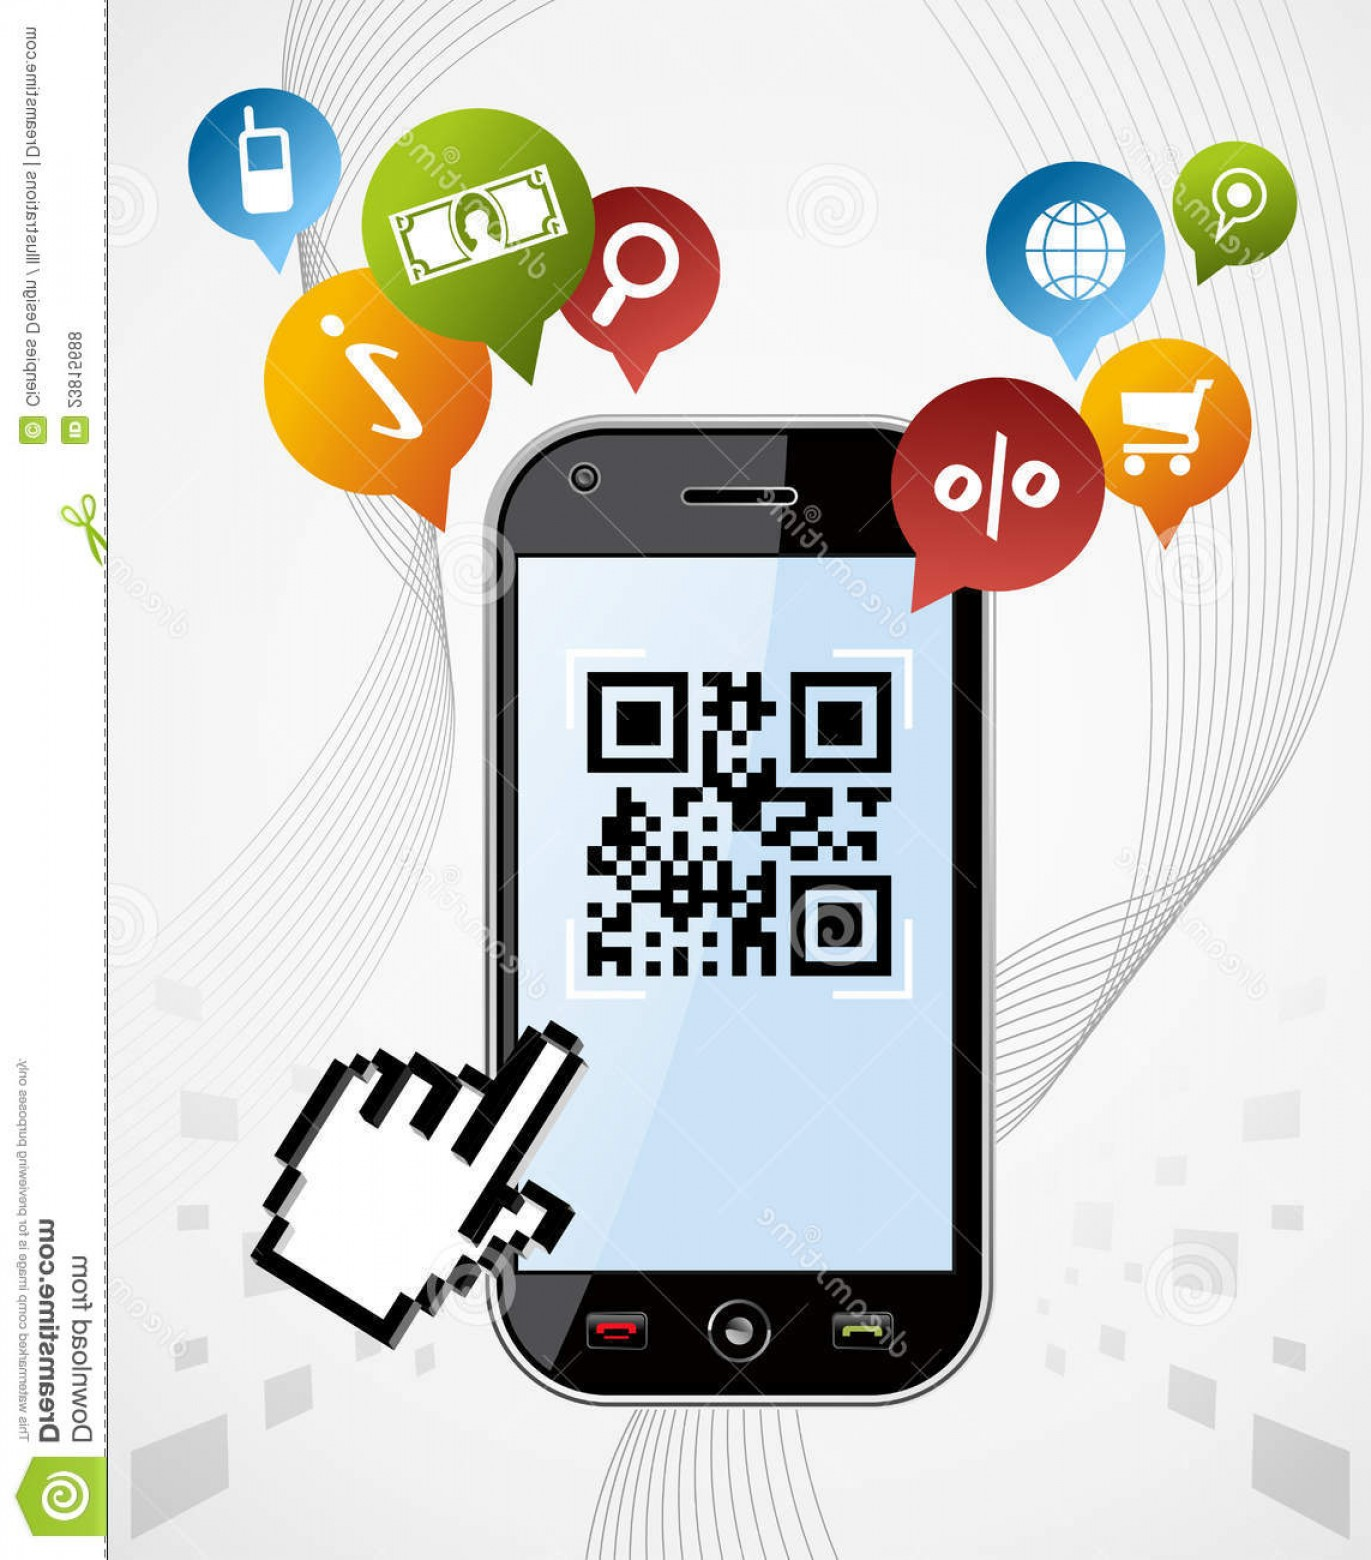 QR Mobile Phone Vector: Royalty Free Stock Photos Smart Phone Qr Code App Vector Illustration Image